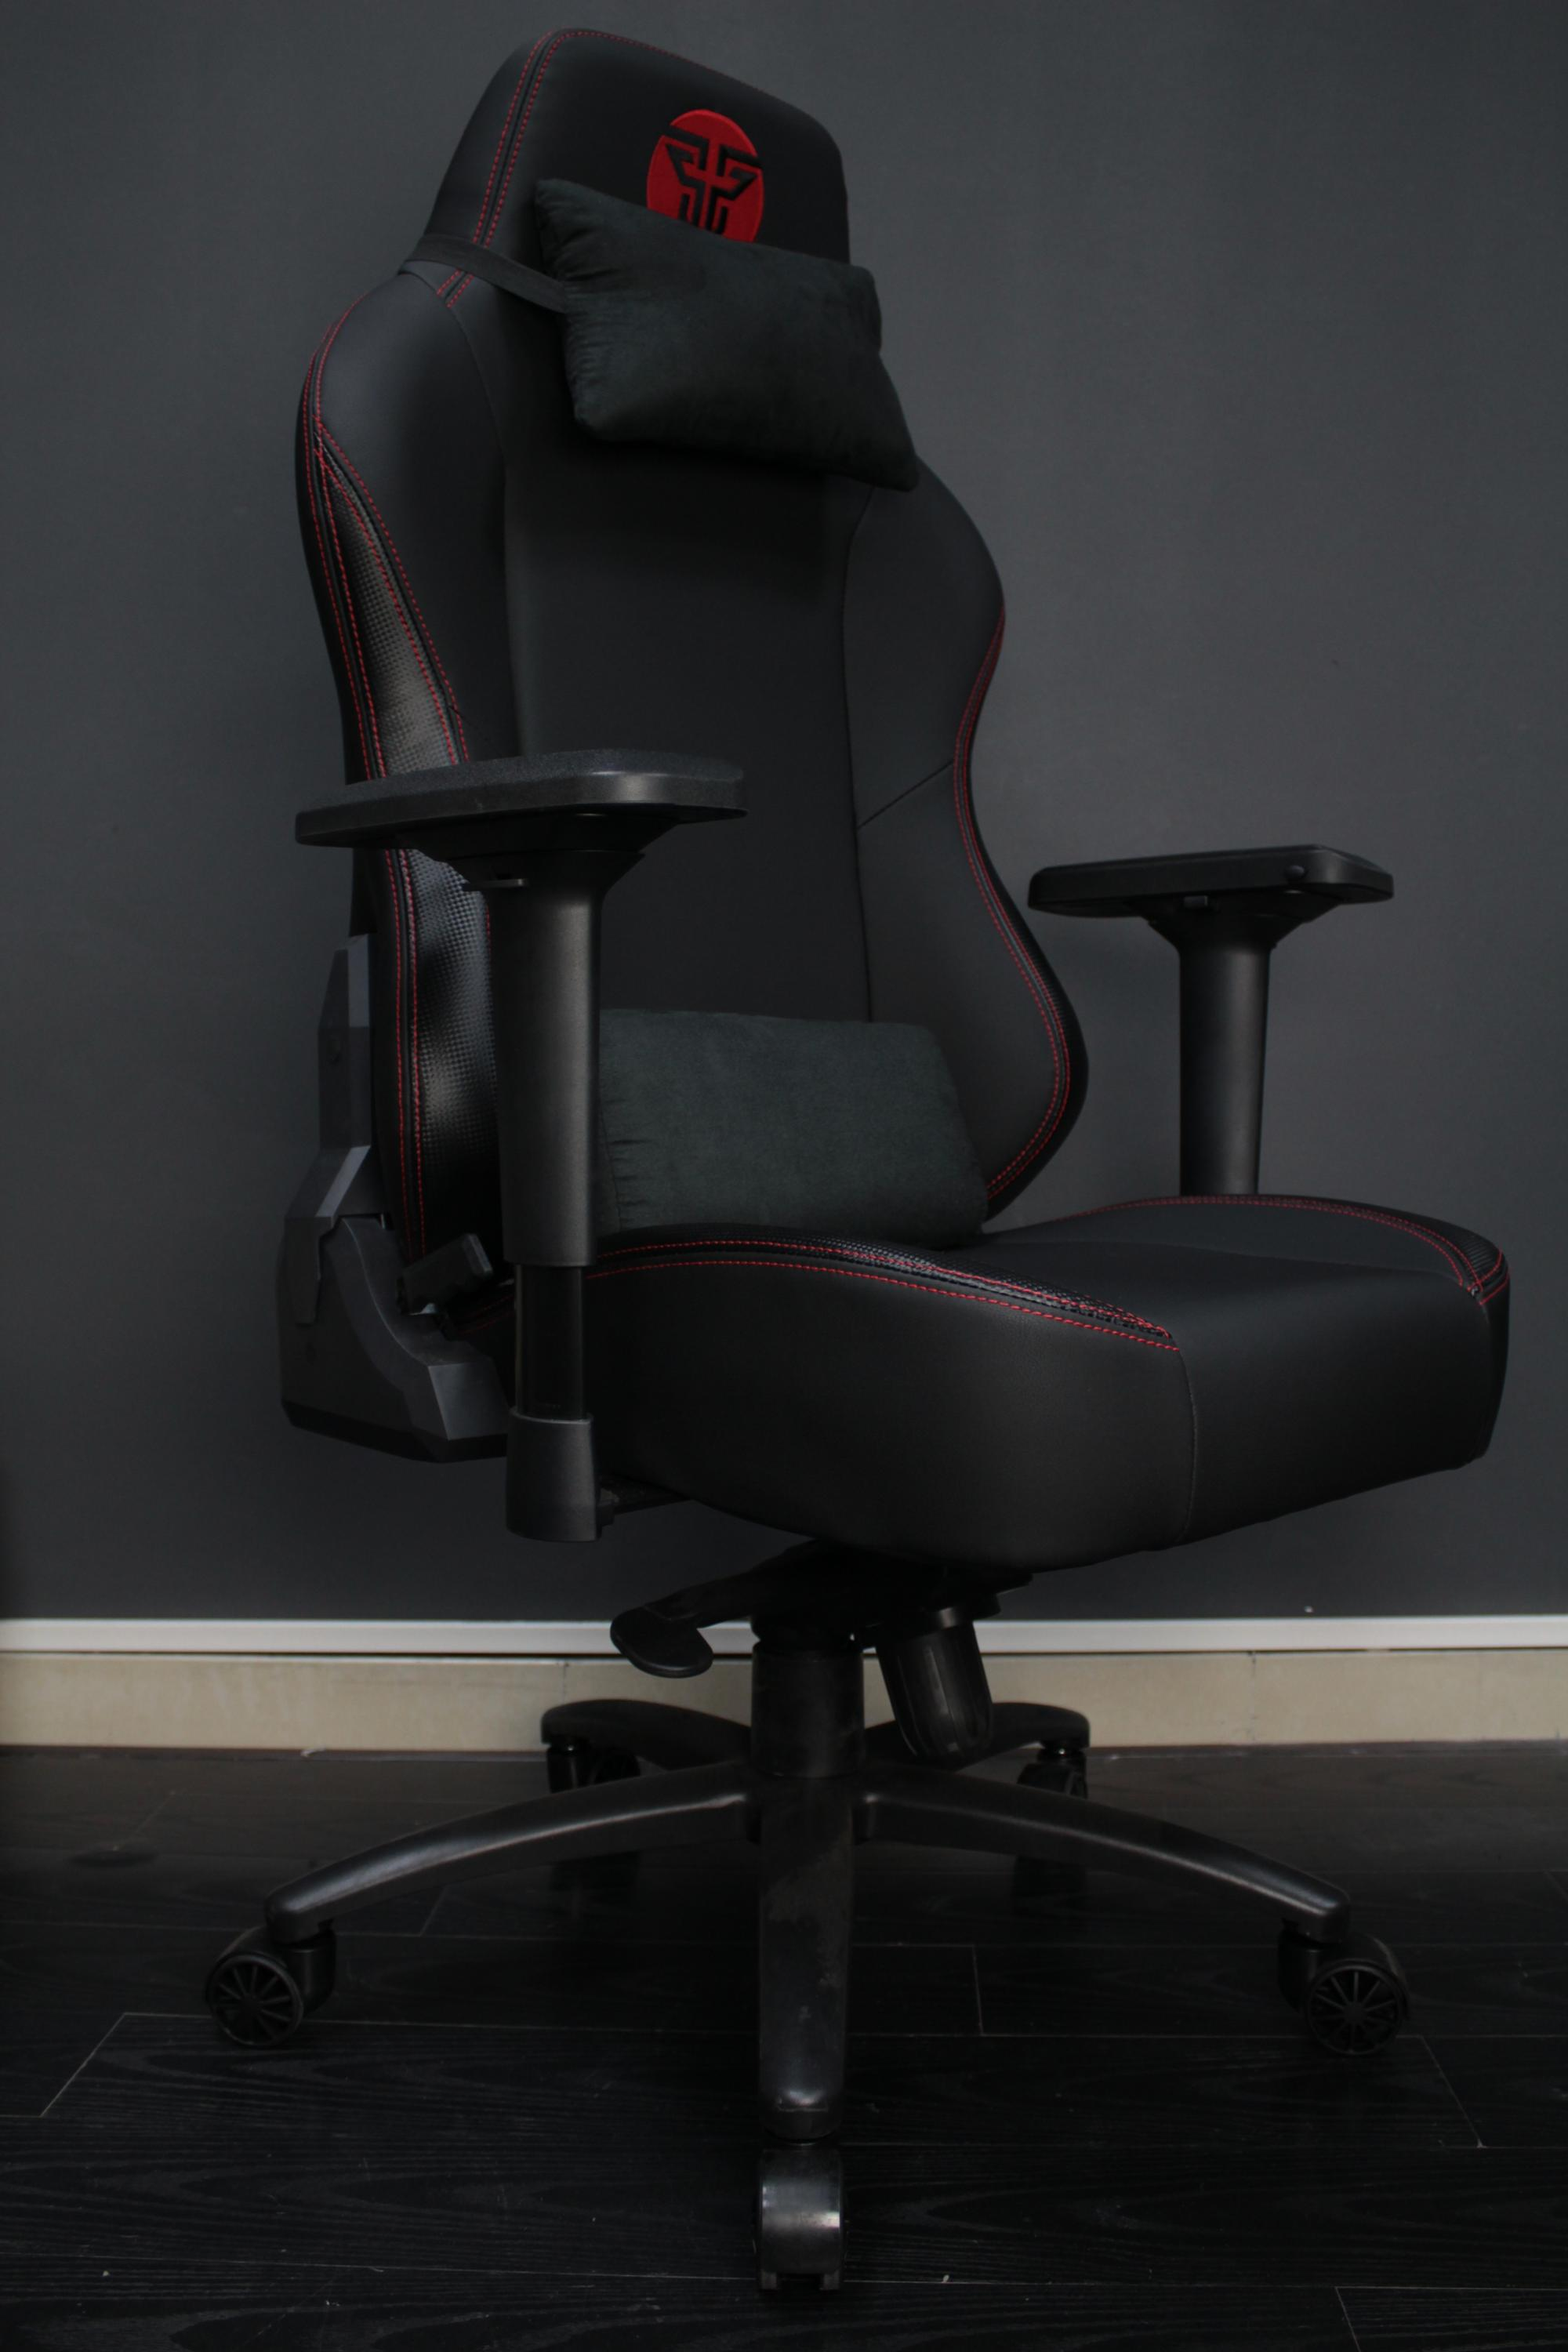 Fantech GC-183 Ergonomic Stability & Safety Gaming Chair7